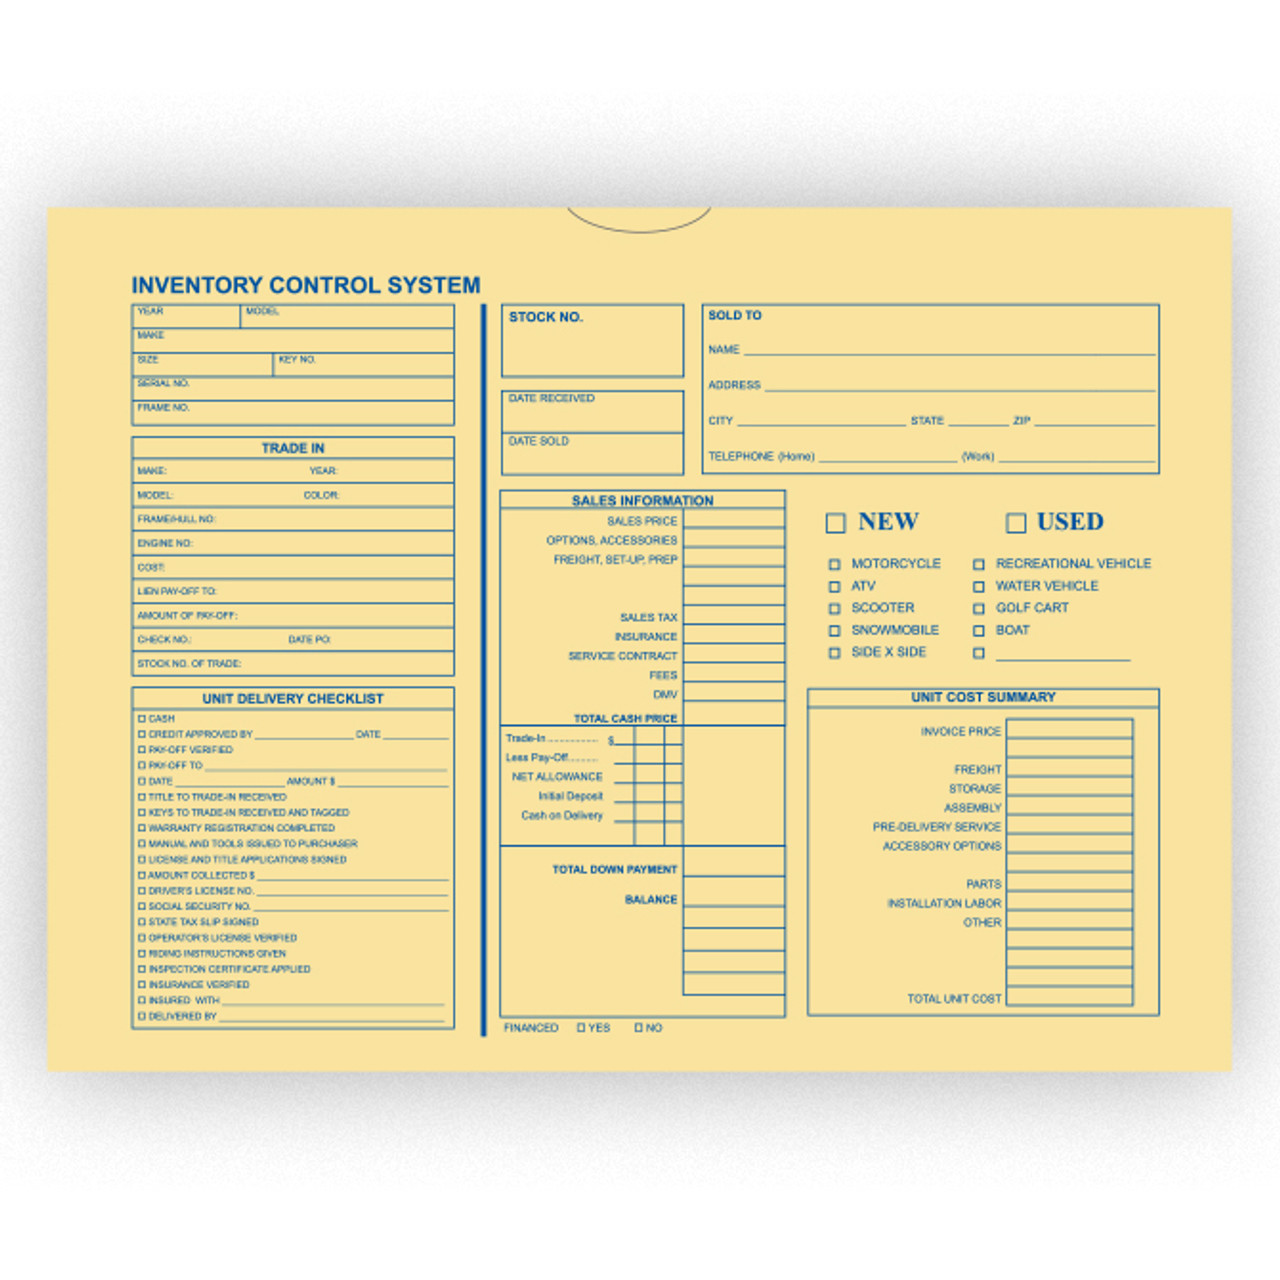 Inventory Control Deal Envelope 100 Pack (Motorcycle, Boat, RV) (Form-#5440-100)